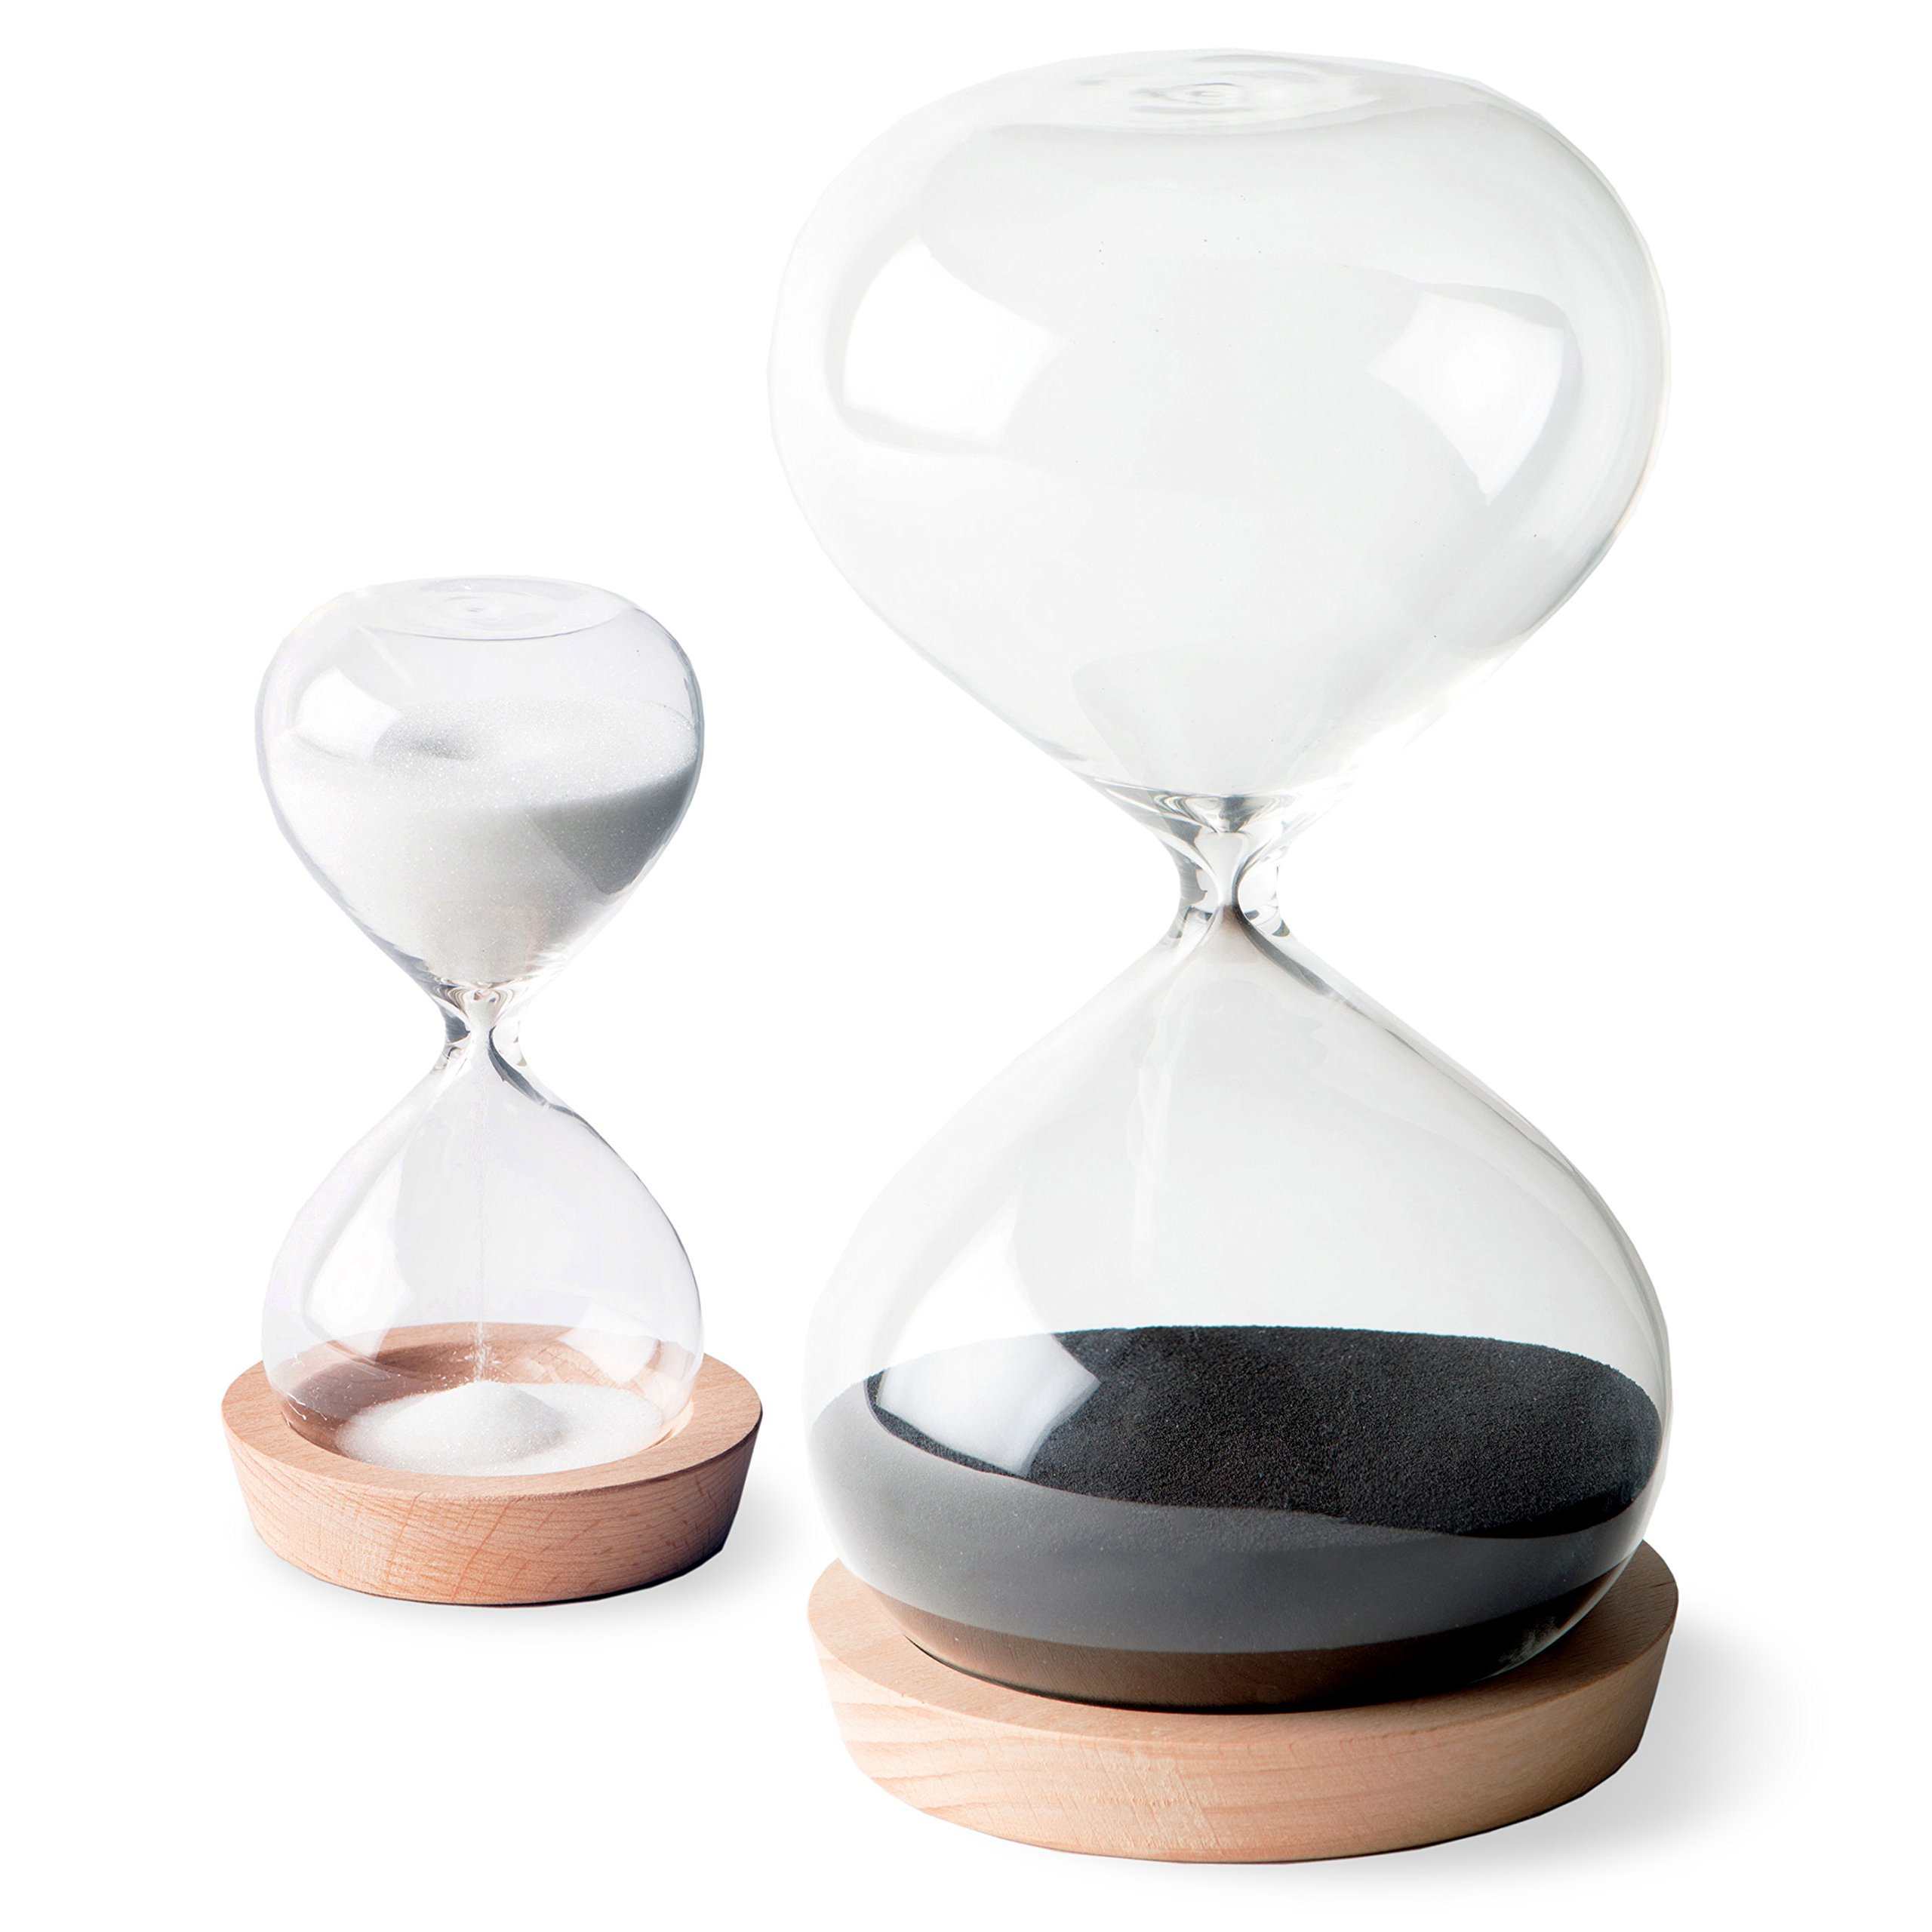 OrgaNice Hourglass Sand Timer - 30 Minute & 5 Minute Timer Set - Improve Productivity & Achieve Goals - Stay Focused & Be More Efficient - Time Management Tool - [Gift-Ready Packaging] by OrgaNice